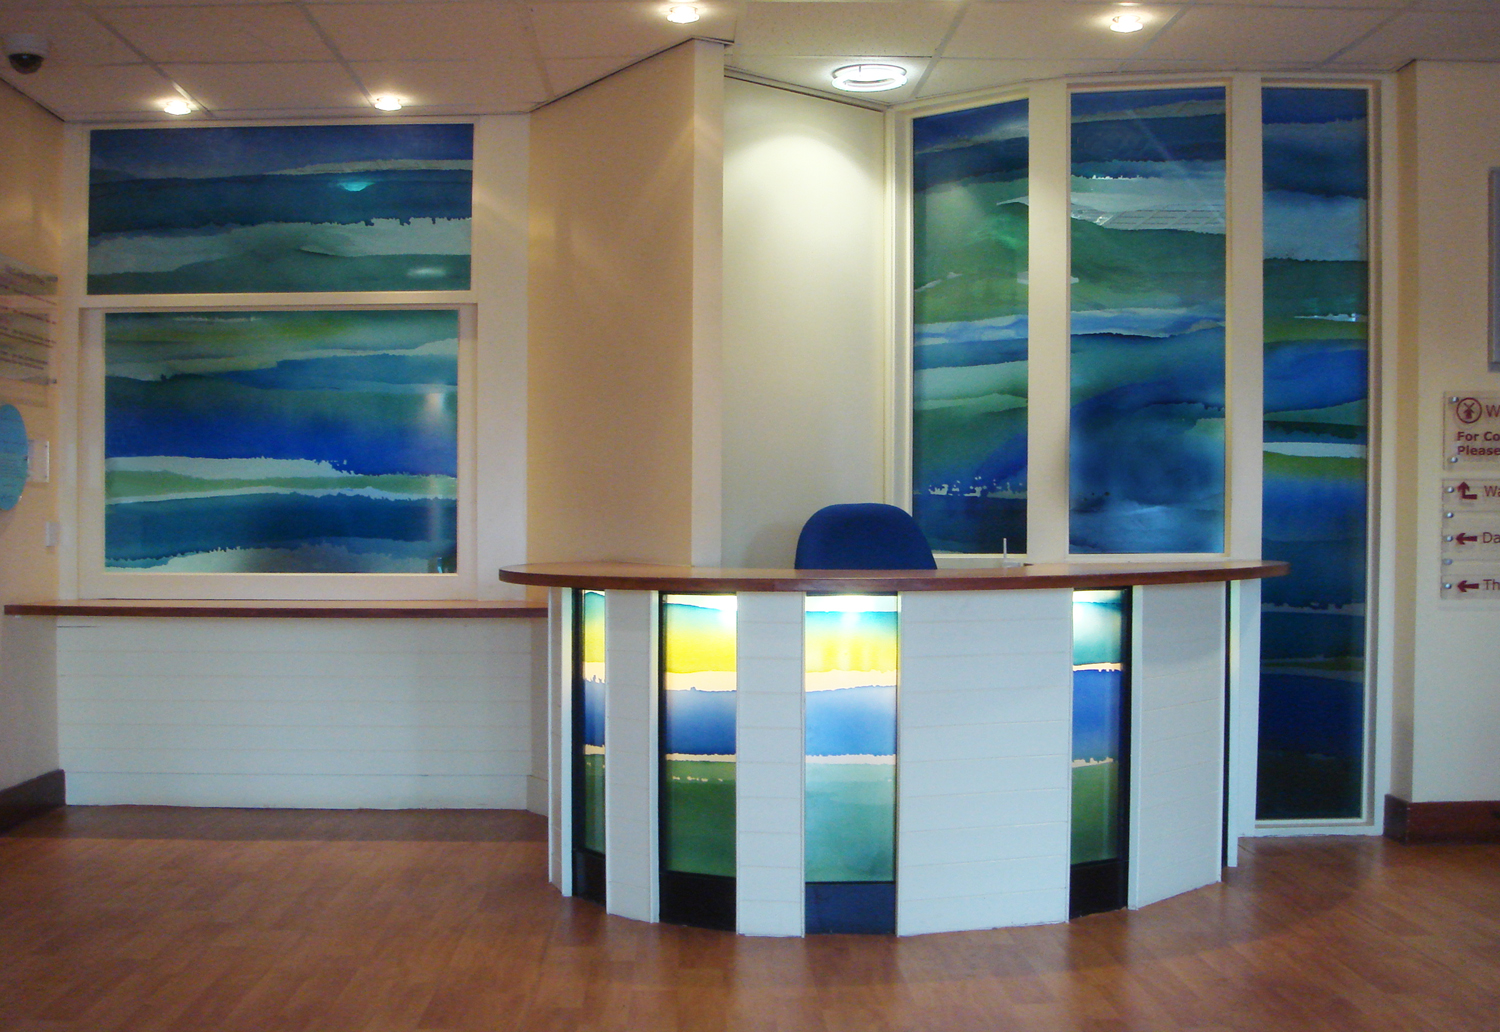 Reception area for Abraham Cowley MH Unit, Surrey and Borders NHS Trust, Chertsey.